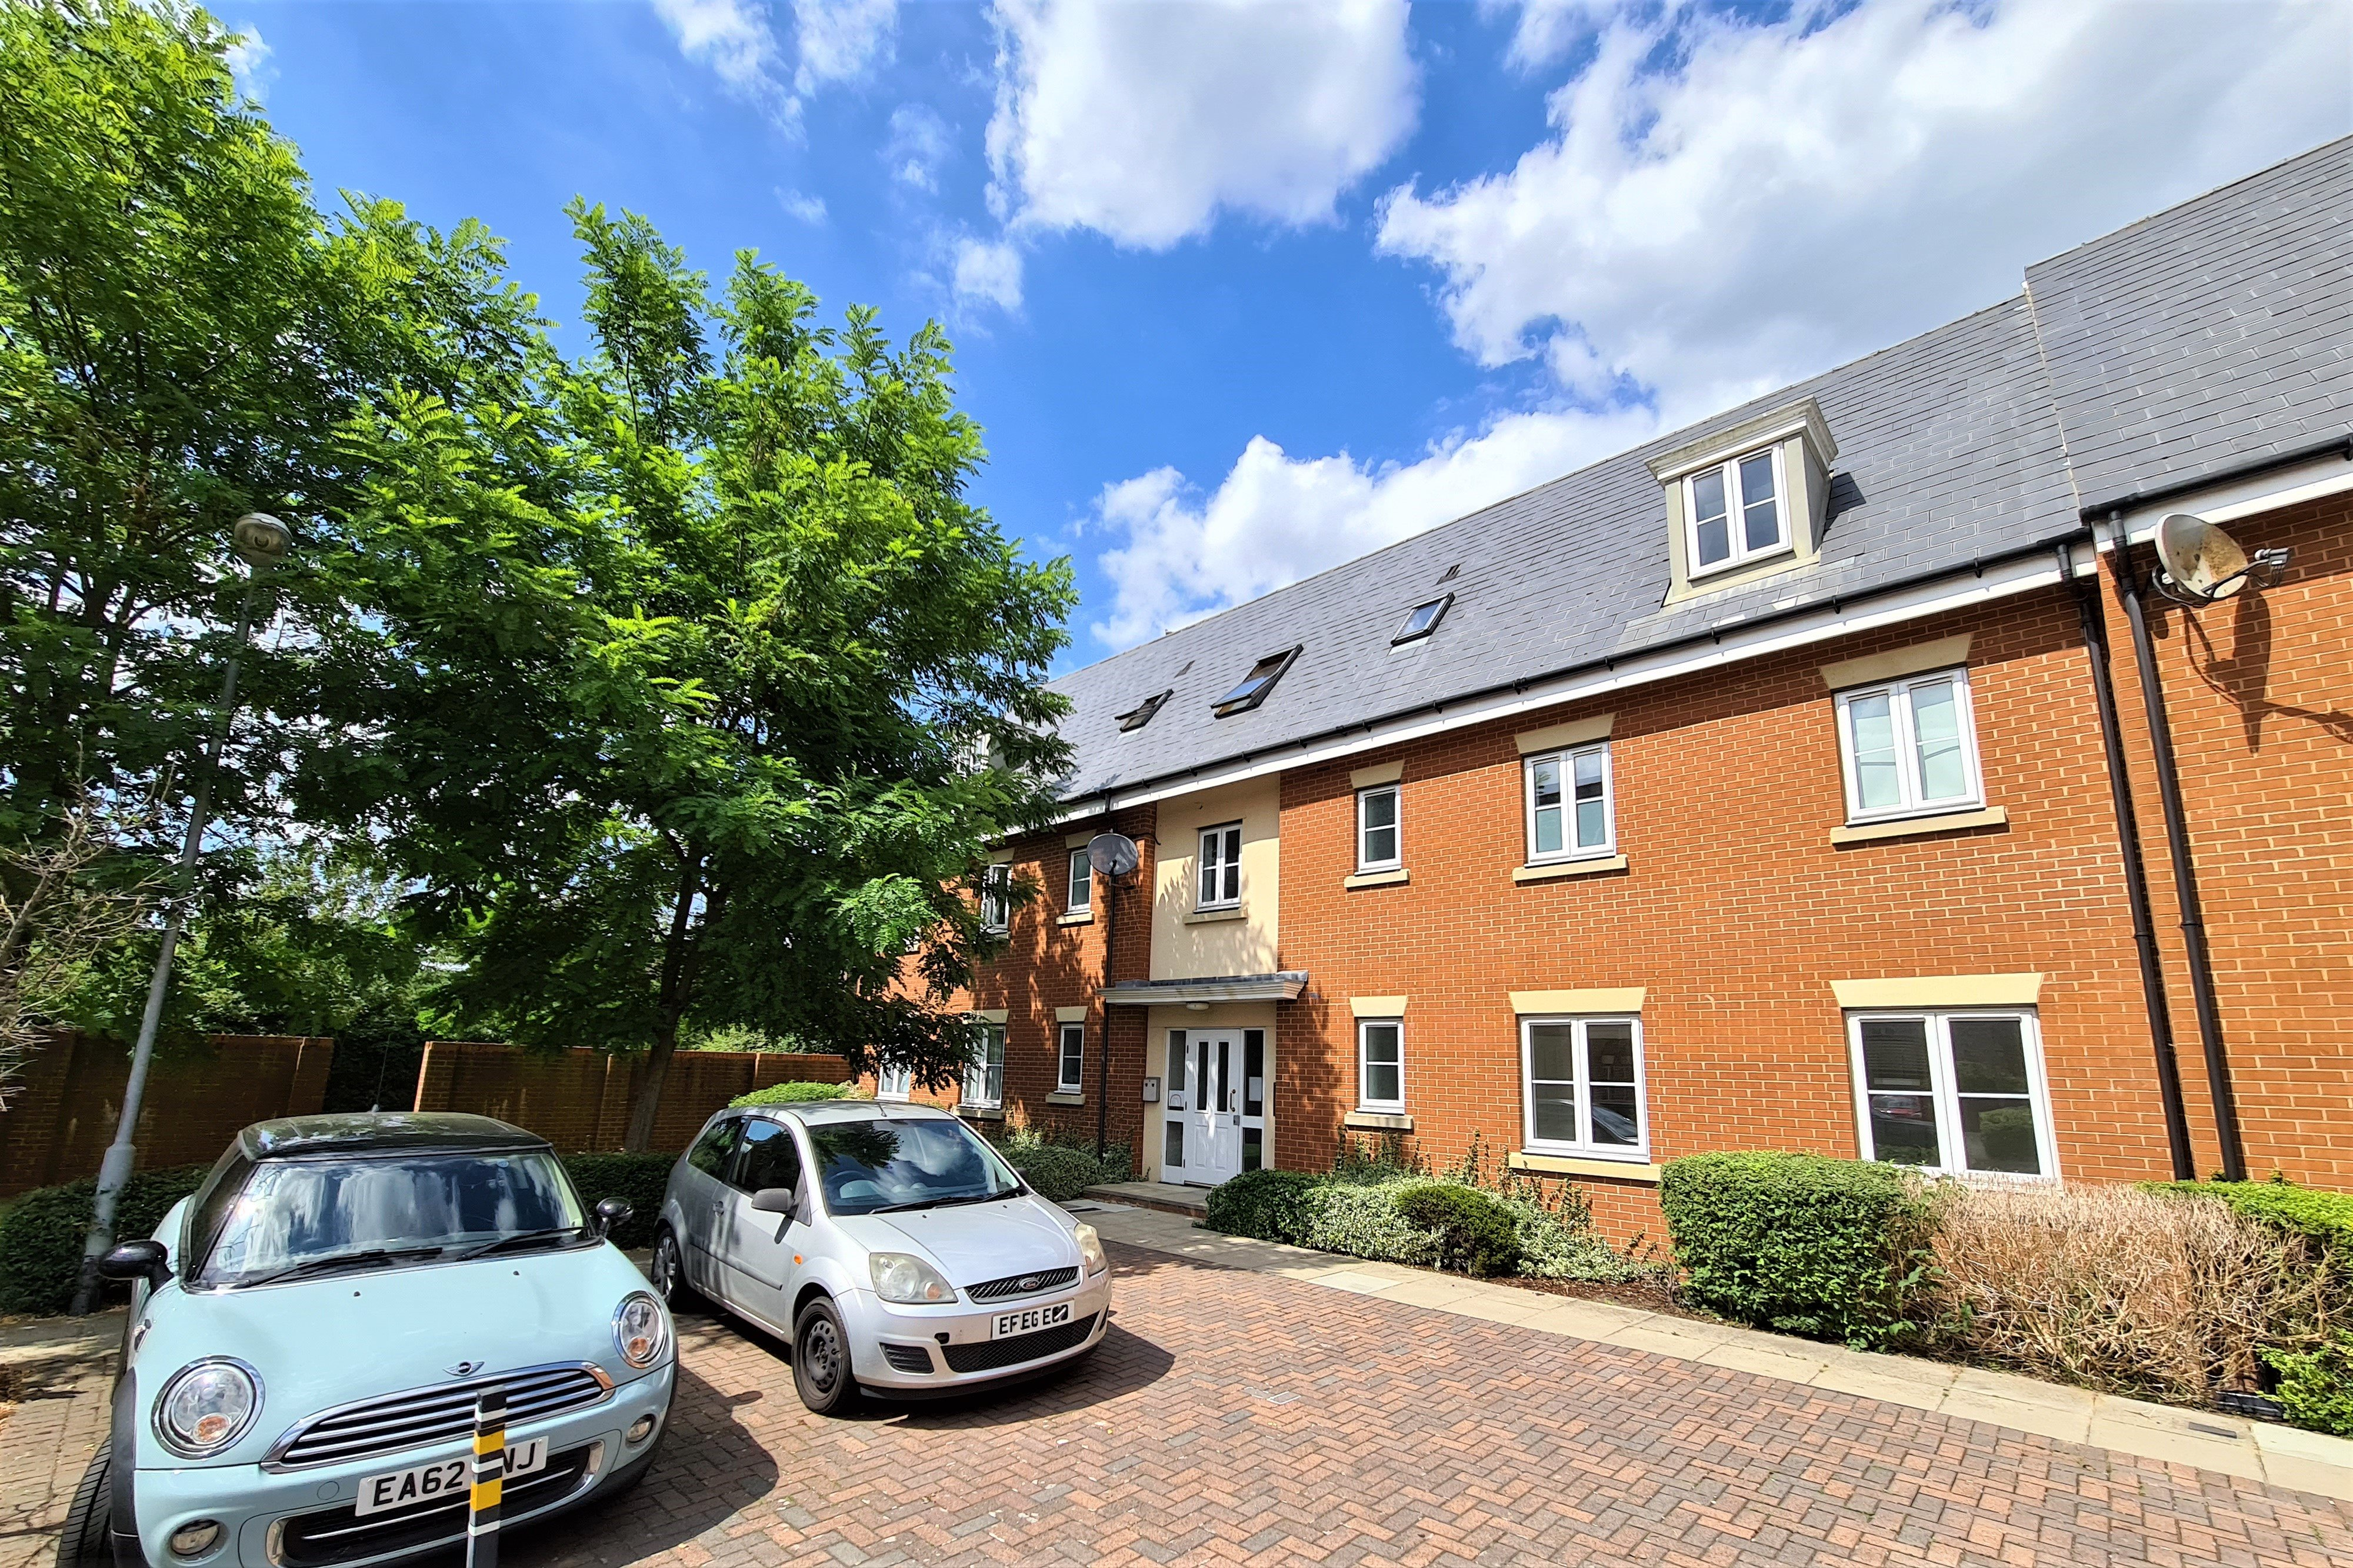 2 bed flat for sale in Priory Chase, Rayleigh - Property Image 1